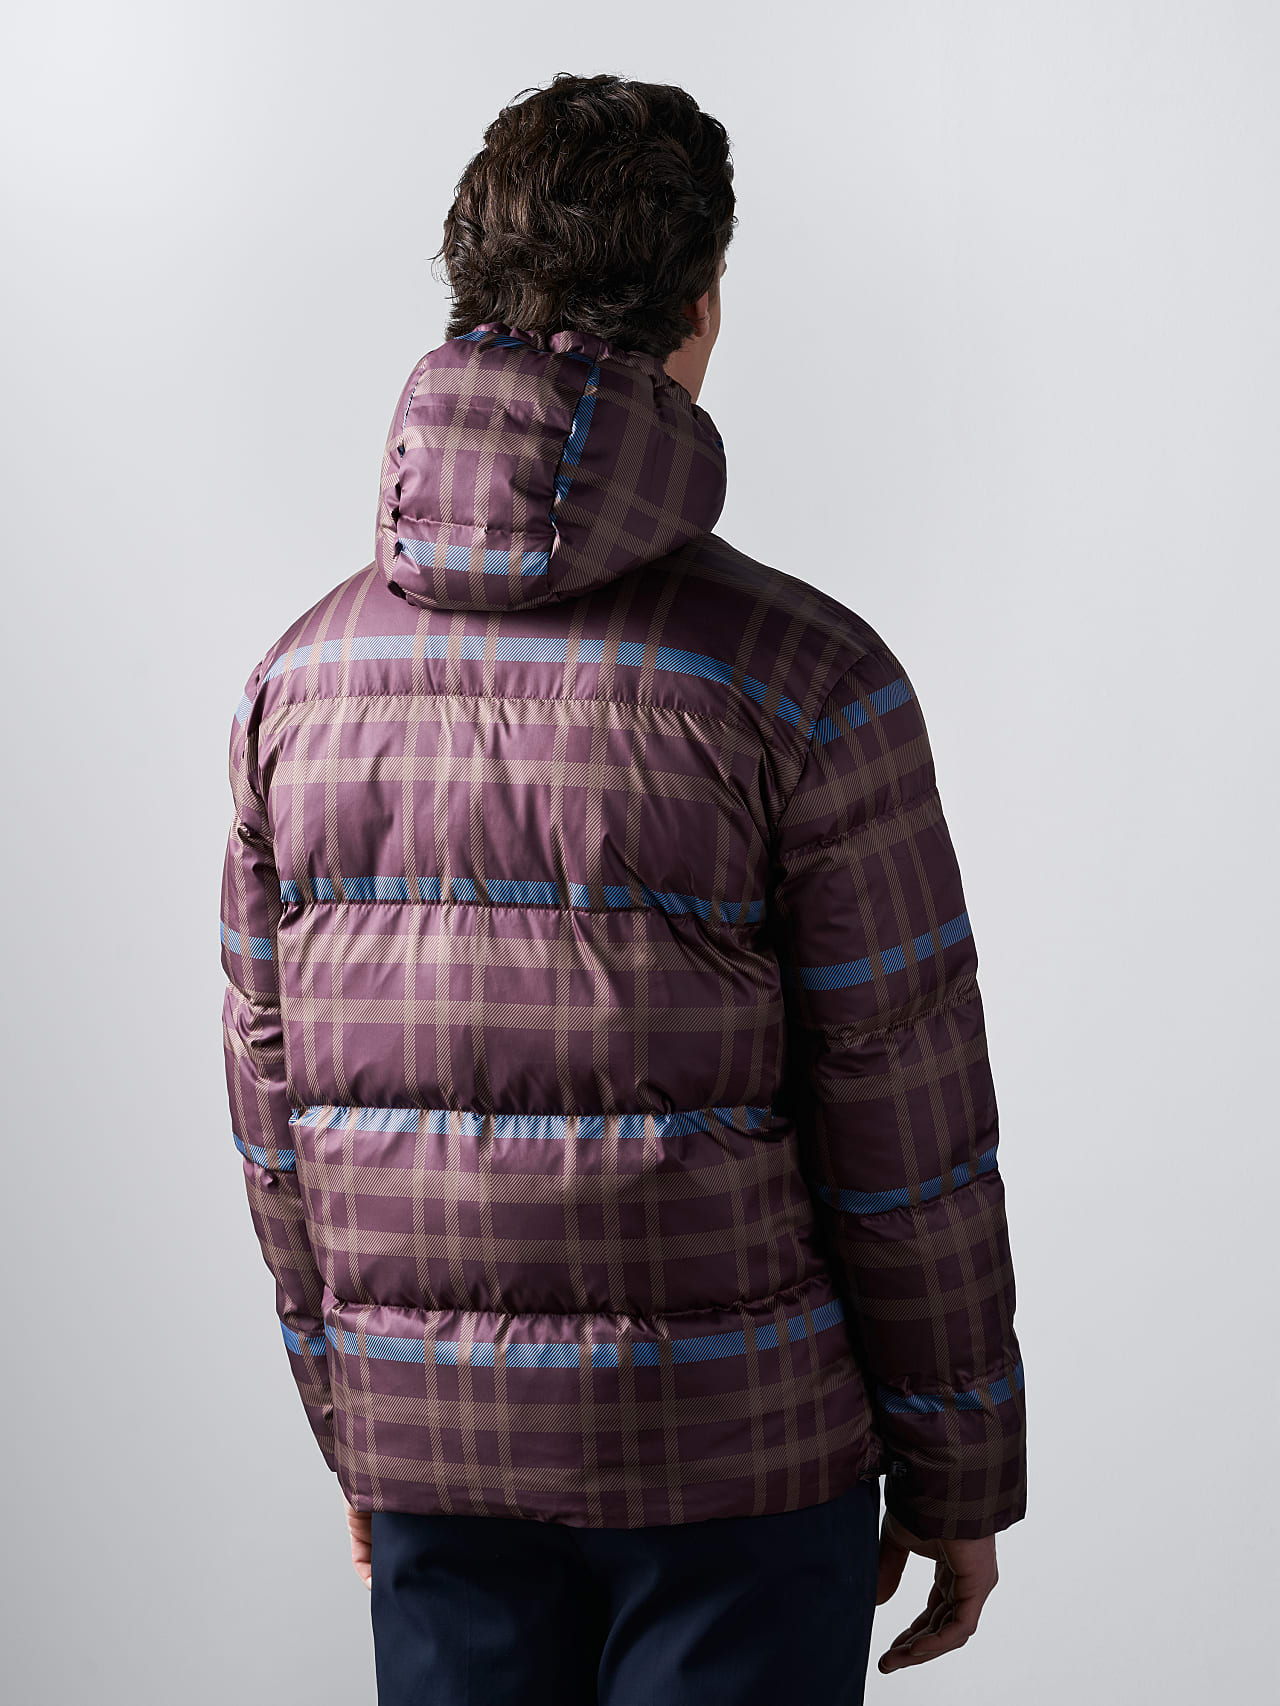 OTACE V1.Y5.02 Reversible 2-in-1 Puffer Jacket bordeaux Front Main Alpha Tauri